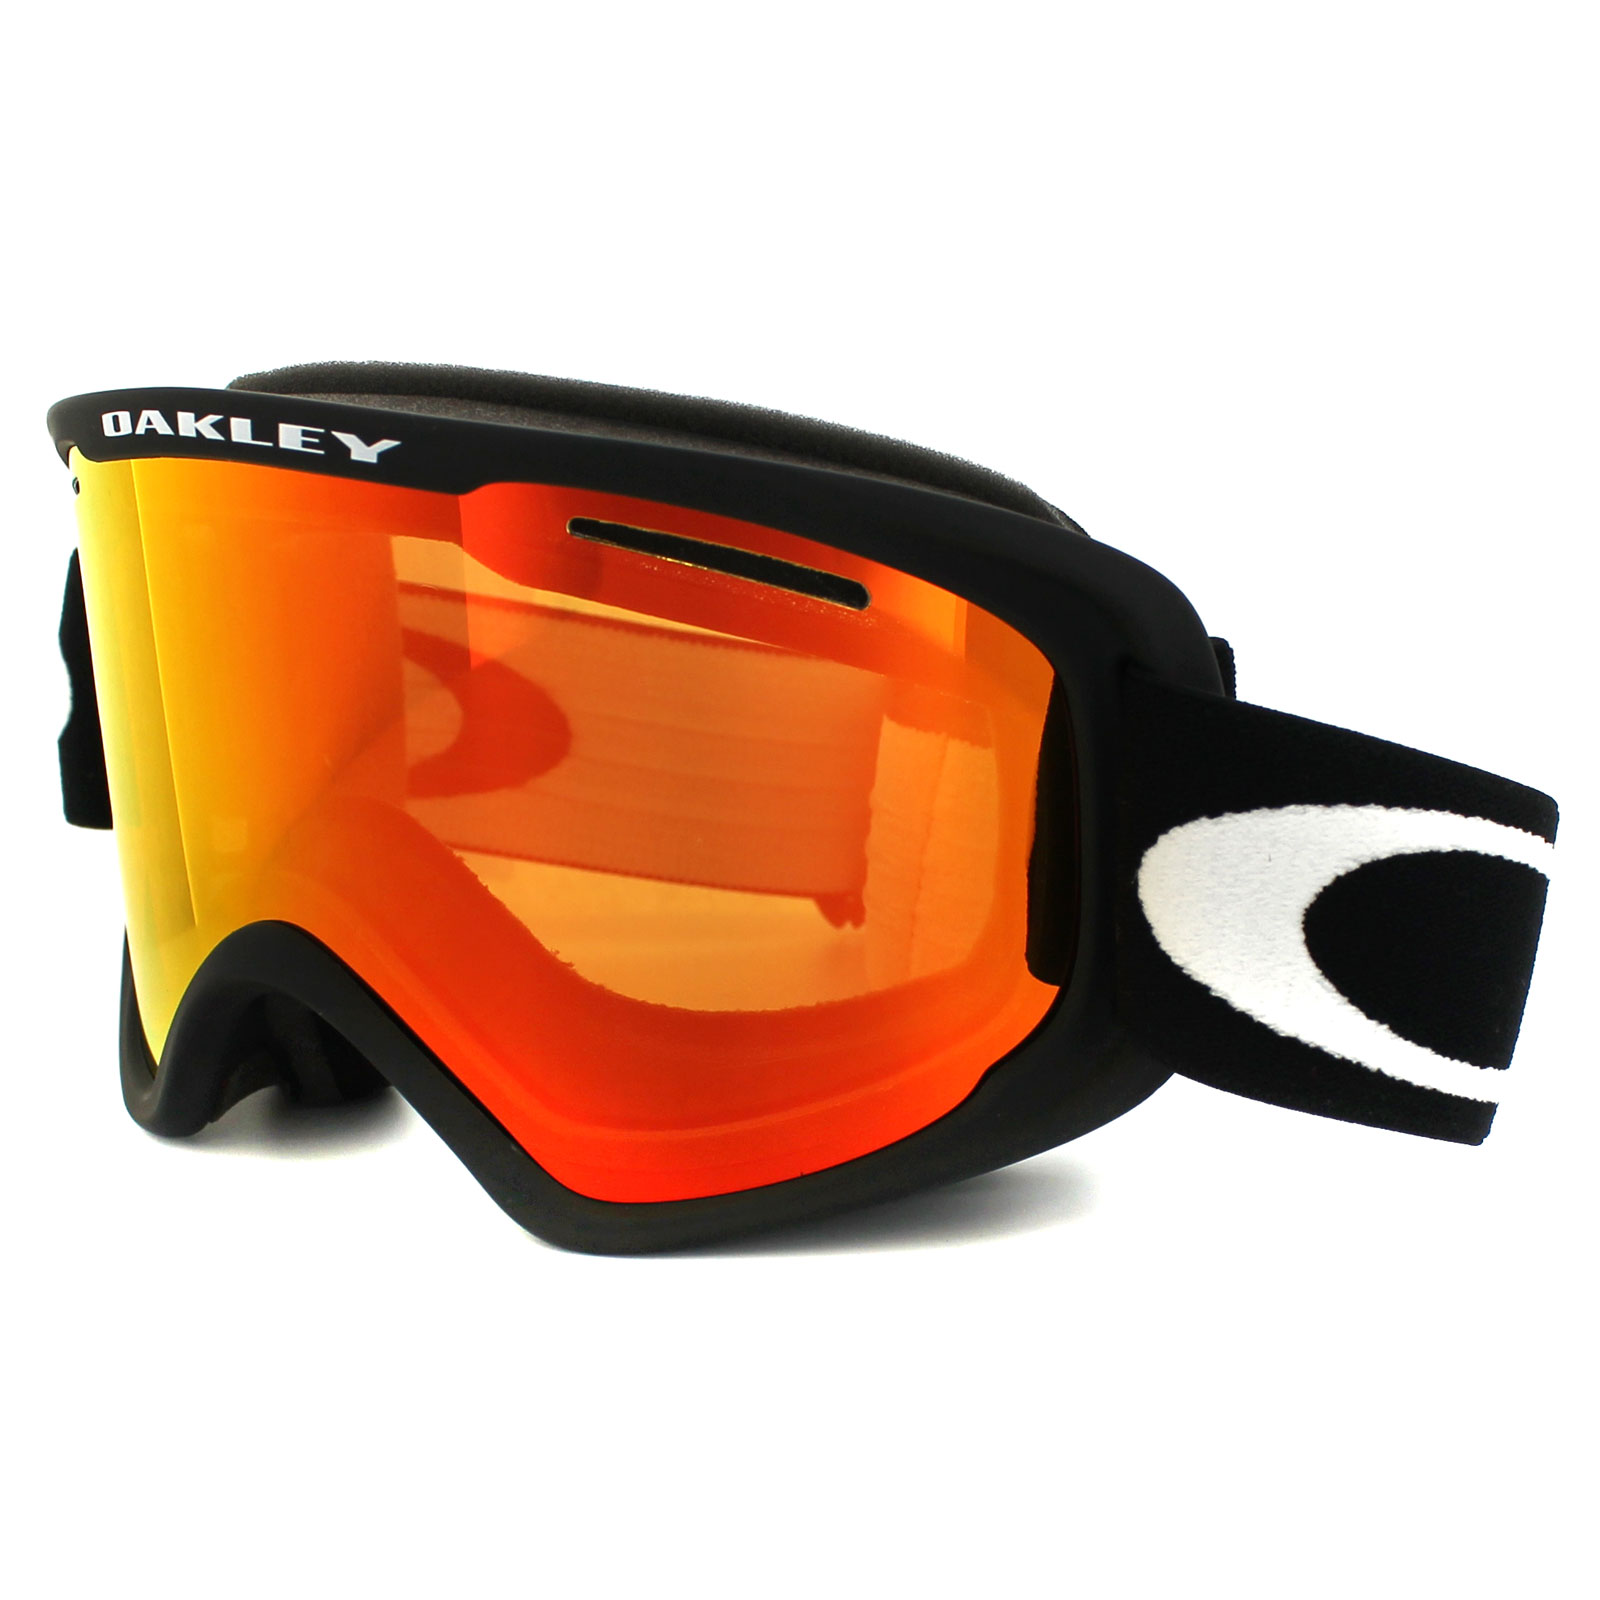 oakley mens ski goggles  Cheap Oakley 02 XM Ski Goggles - Discounted Sunglasses